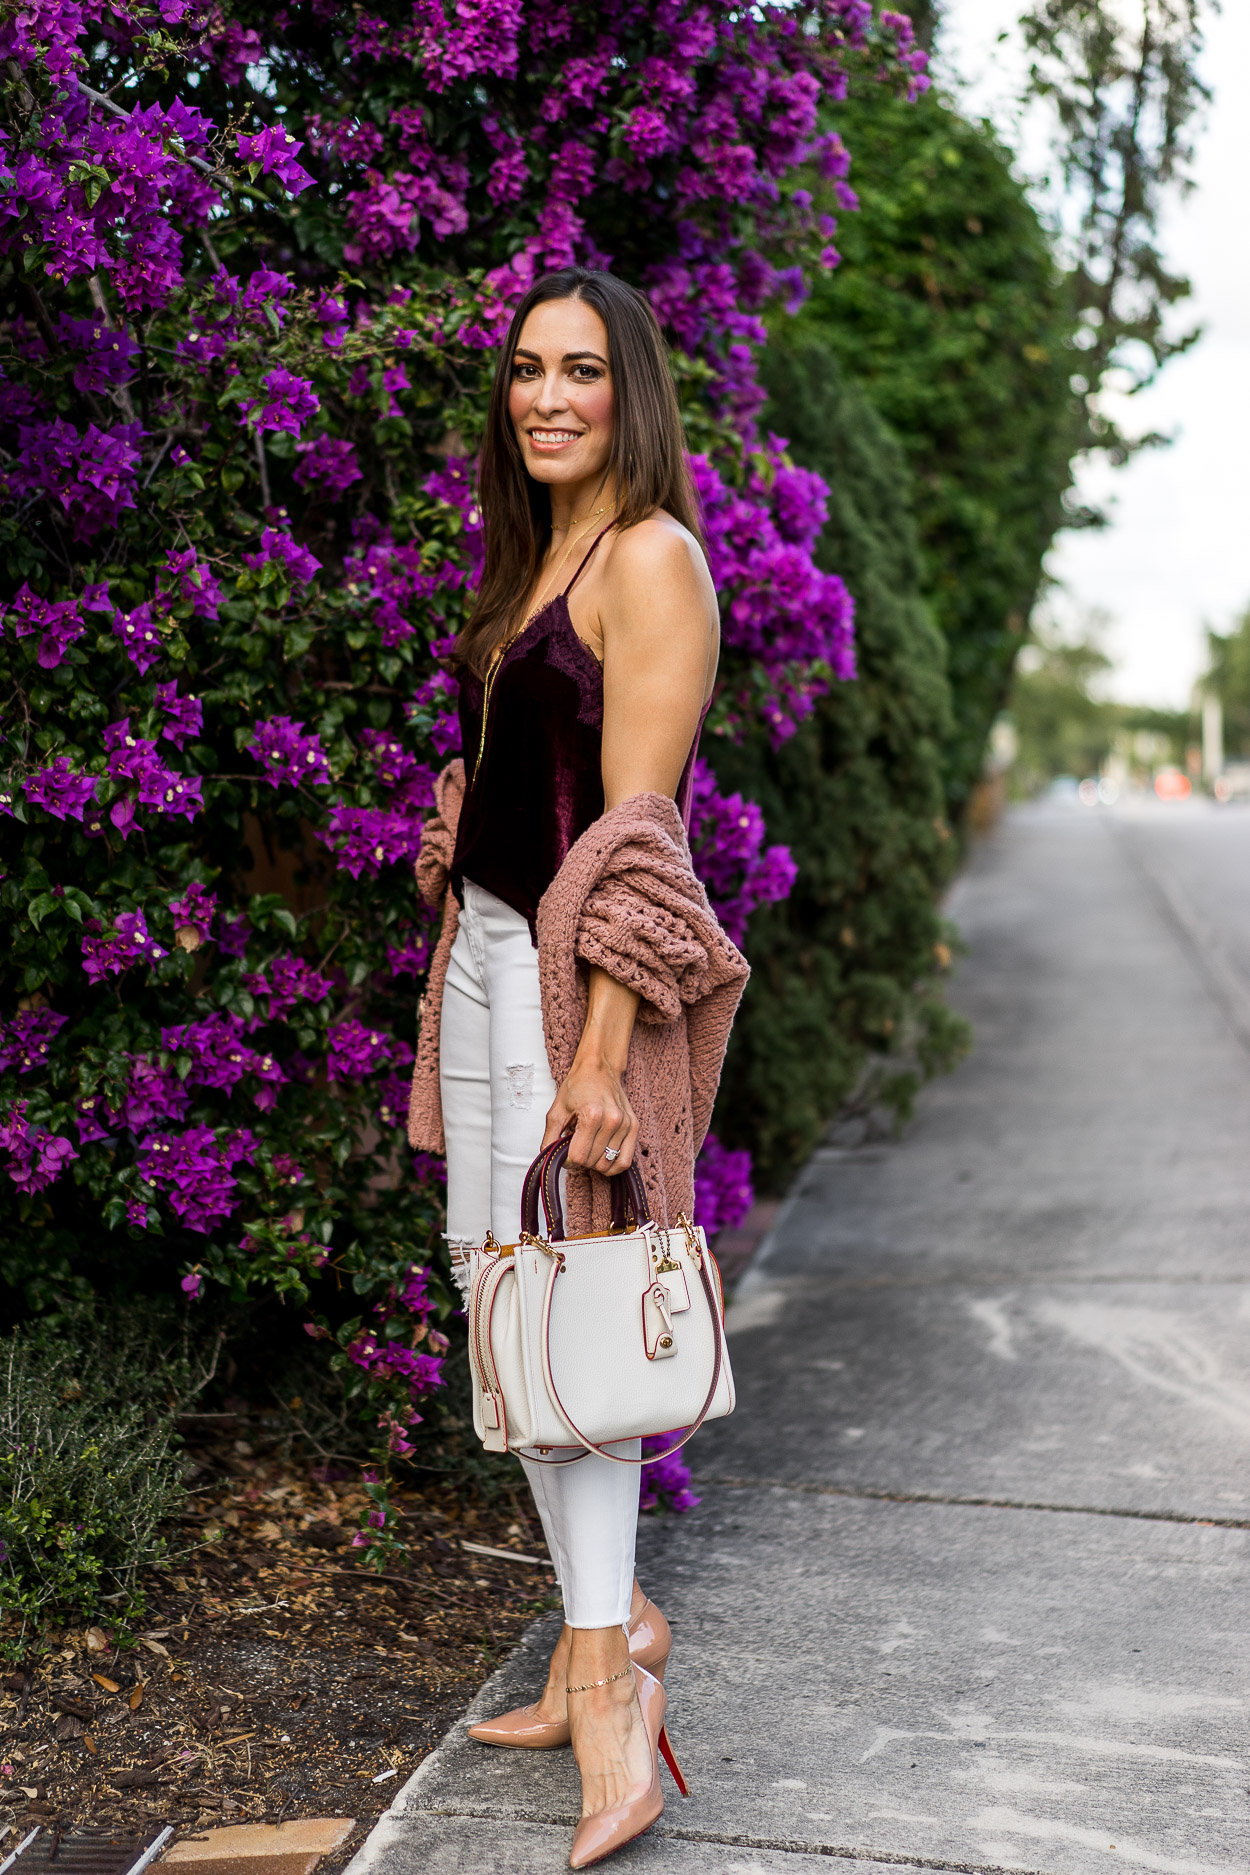 Coach Rogue bag worn by fashion blogger Amanda of A Glam LIfestyle with blush Free People cardigan and velvet cami top